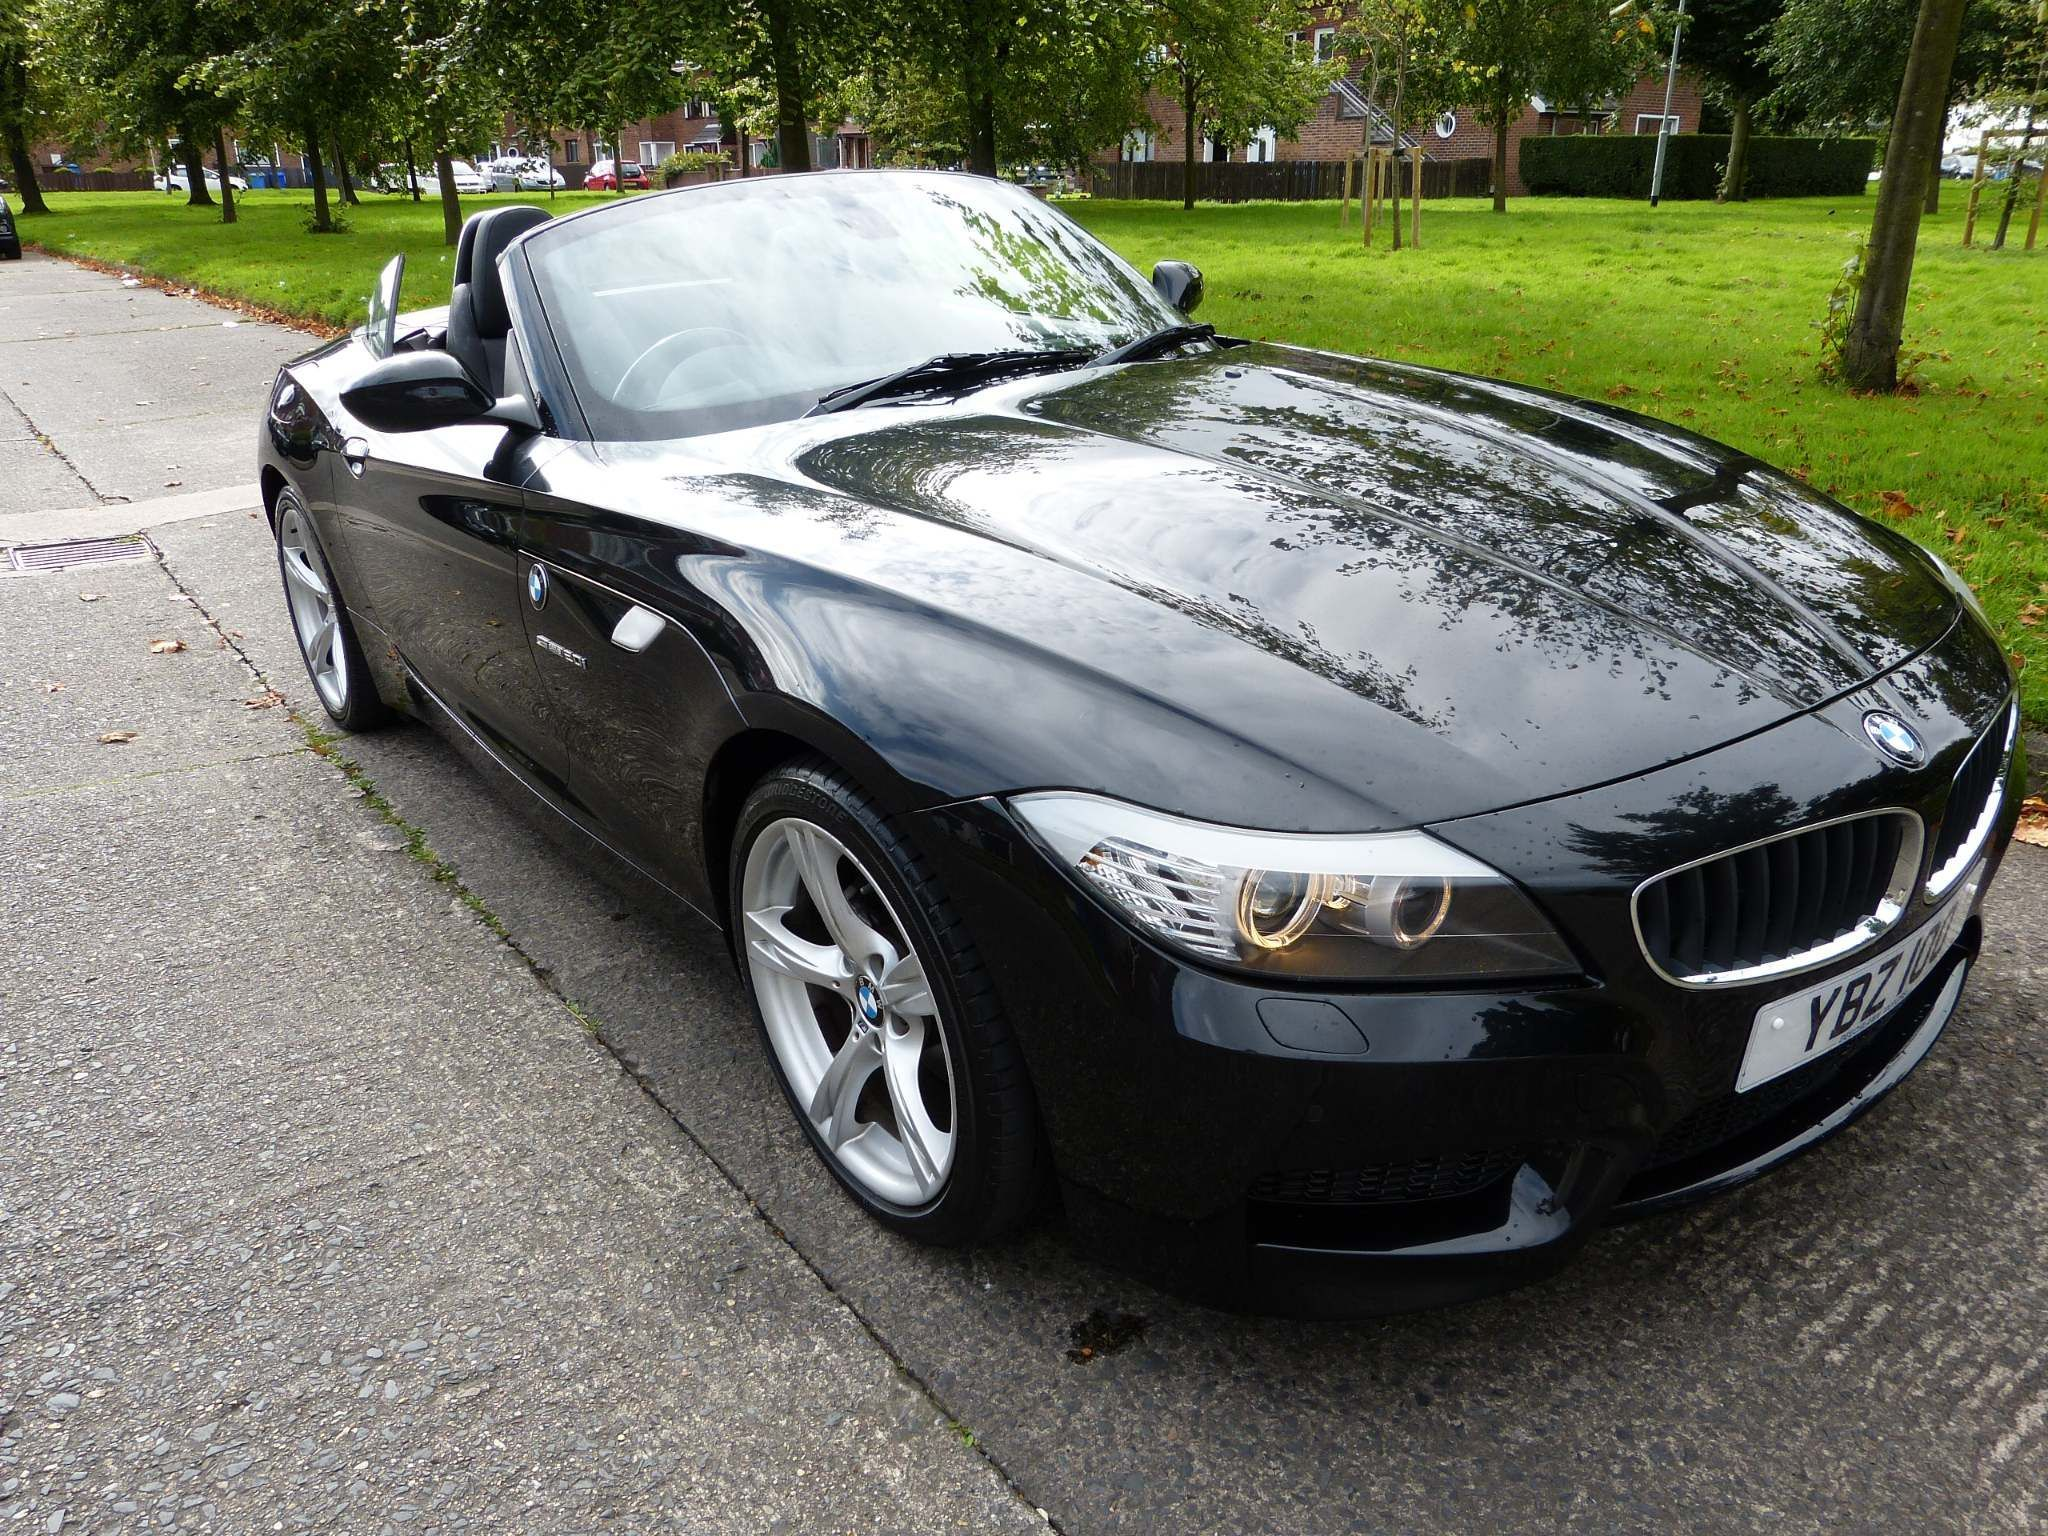 2013 BMW Z4 2.0 20i M Sport sDrive Petrol Manual full leather heated seats – Beechlawn Motors Belfast